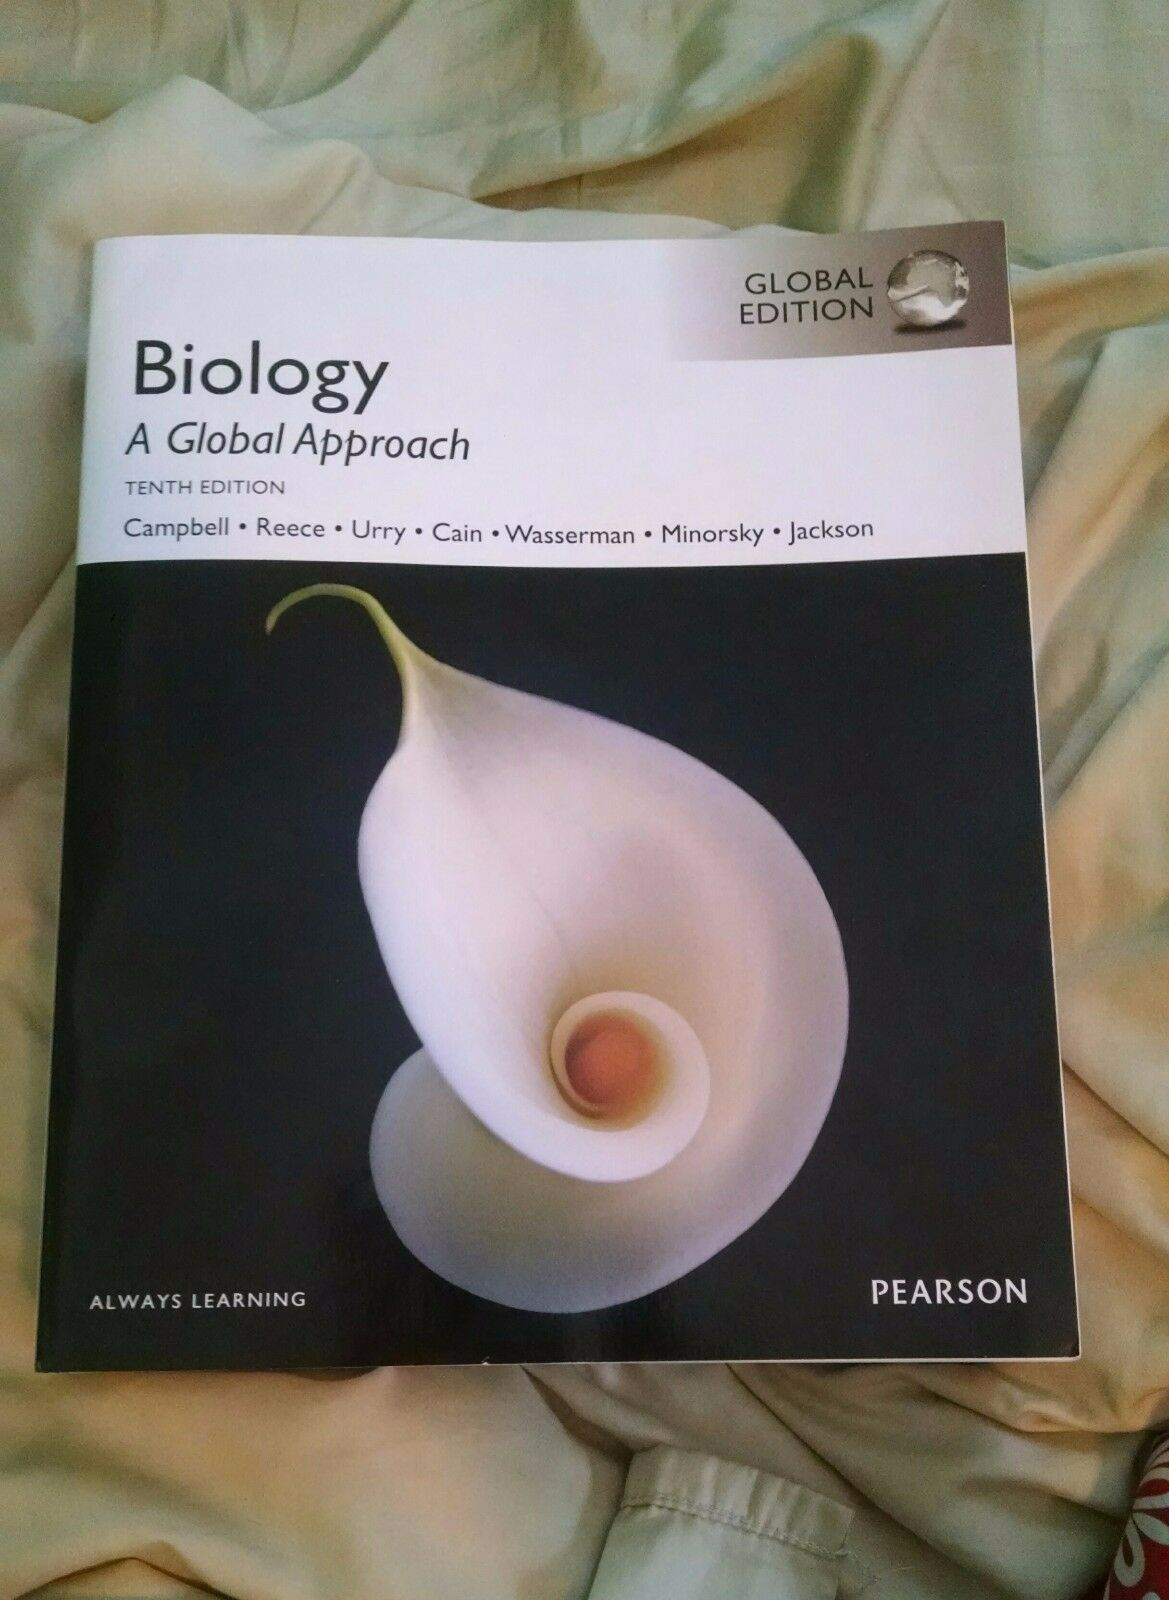 Campbell biology a global approach tenth edition 10th ed 10e ebay resntentobalflowflowcomponenttechnicalissues fandeluxe Images